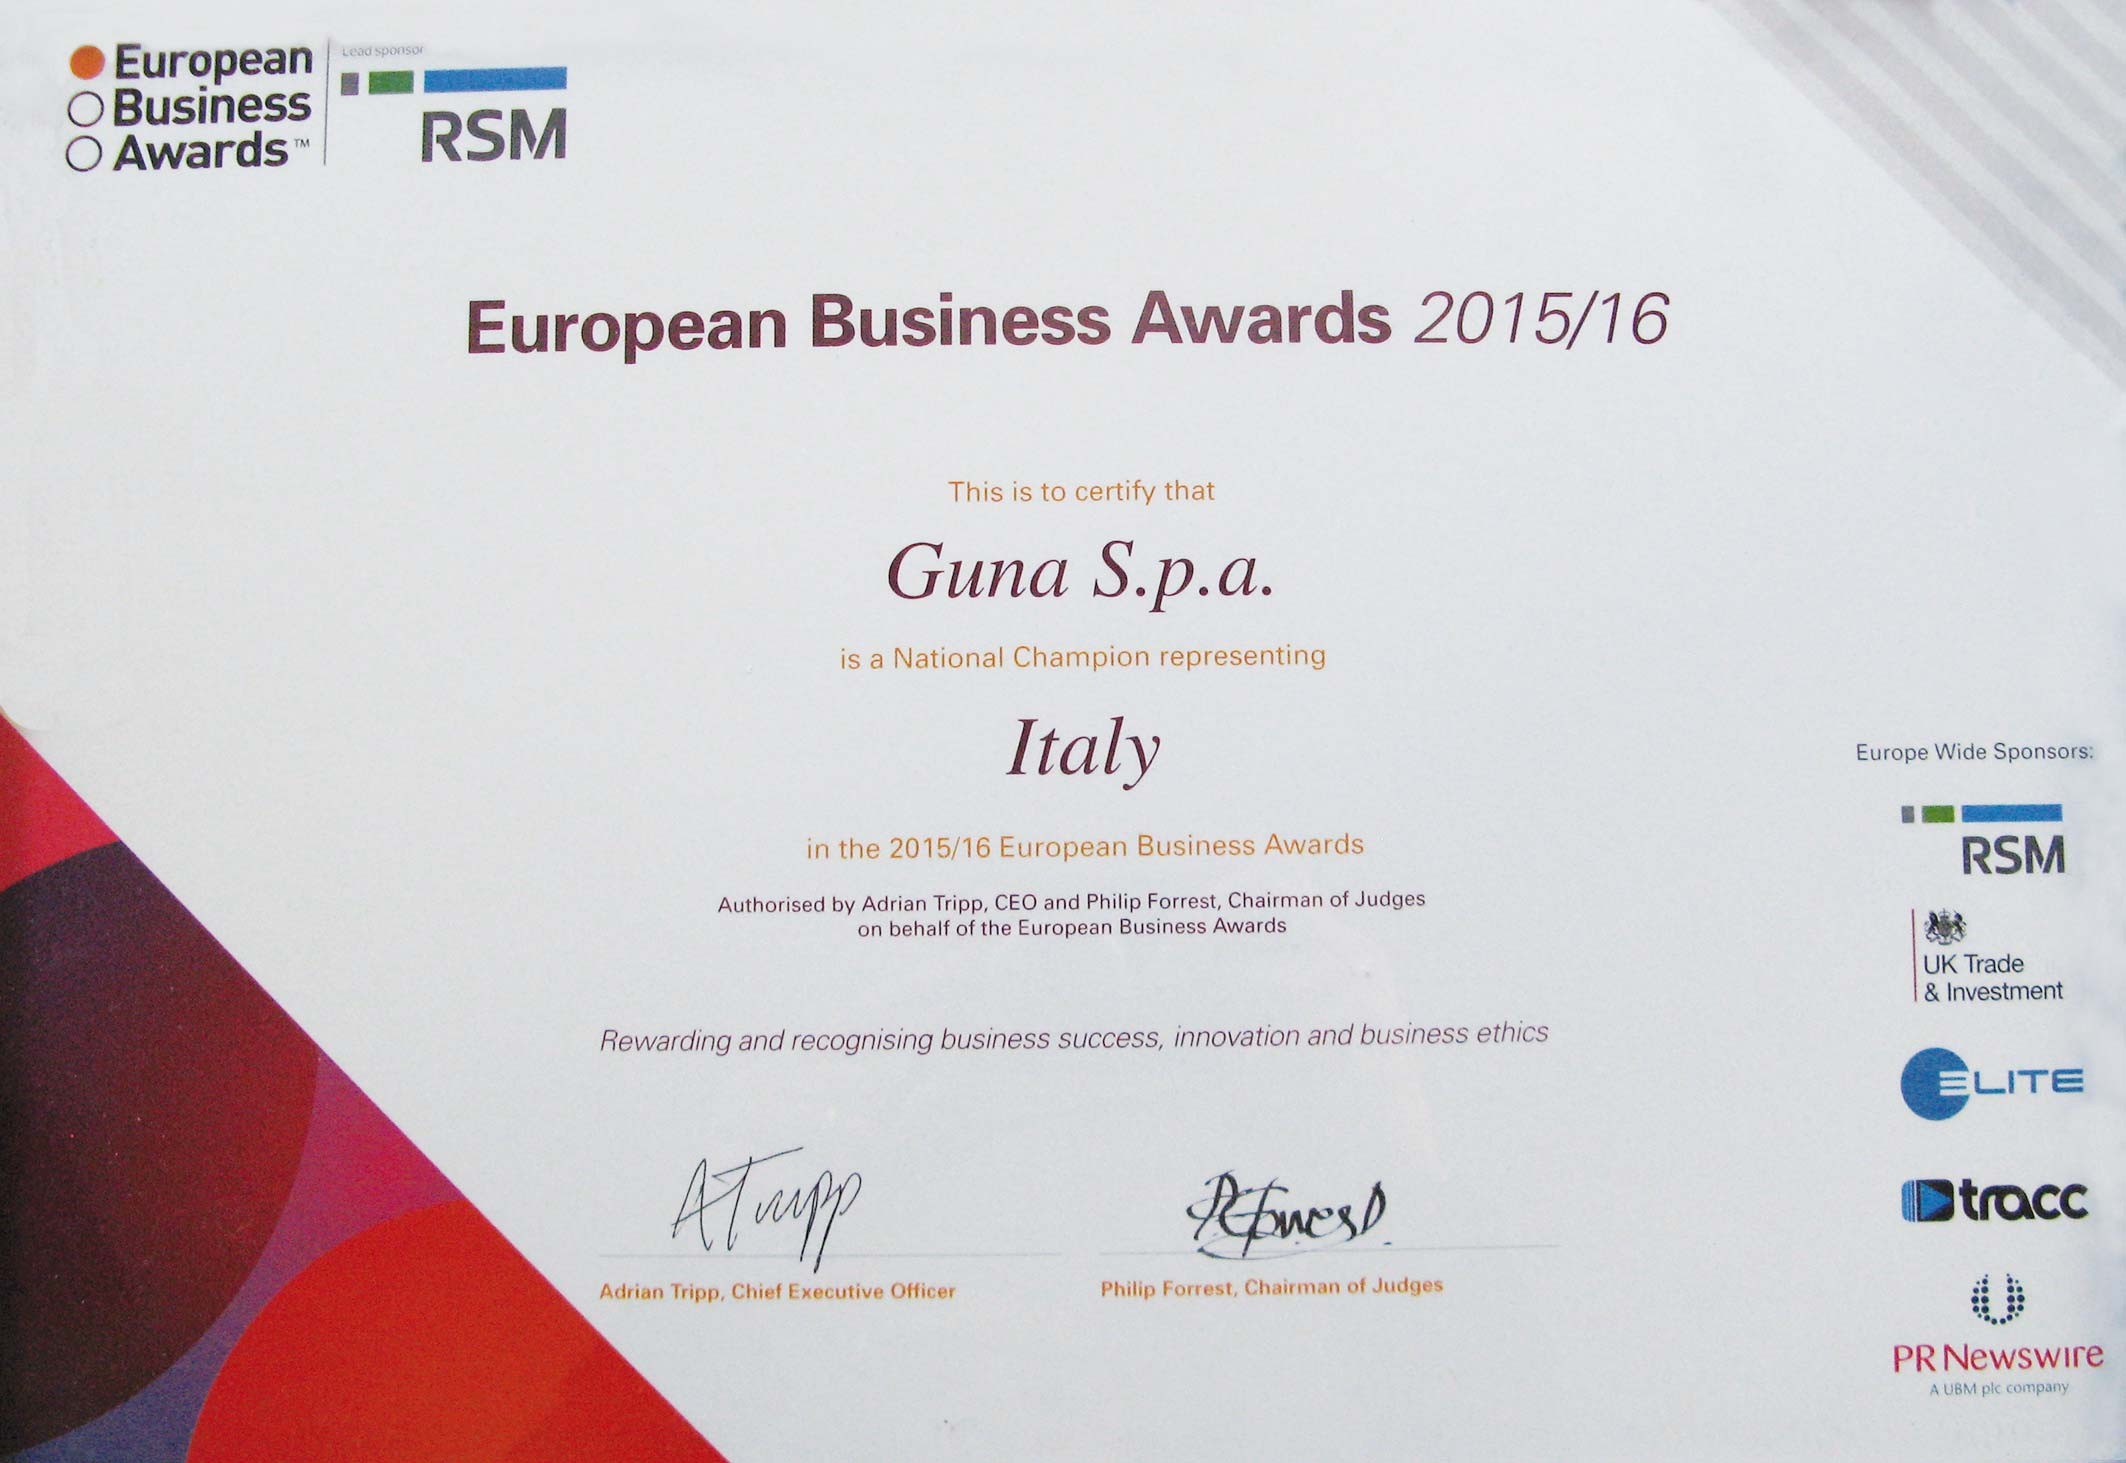 European Business Award